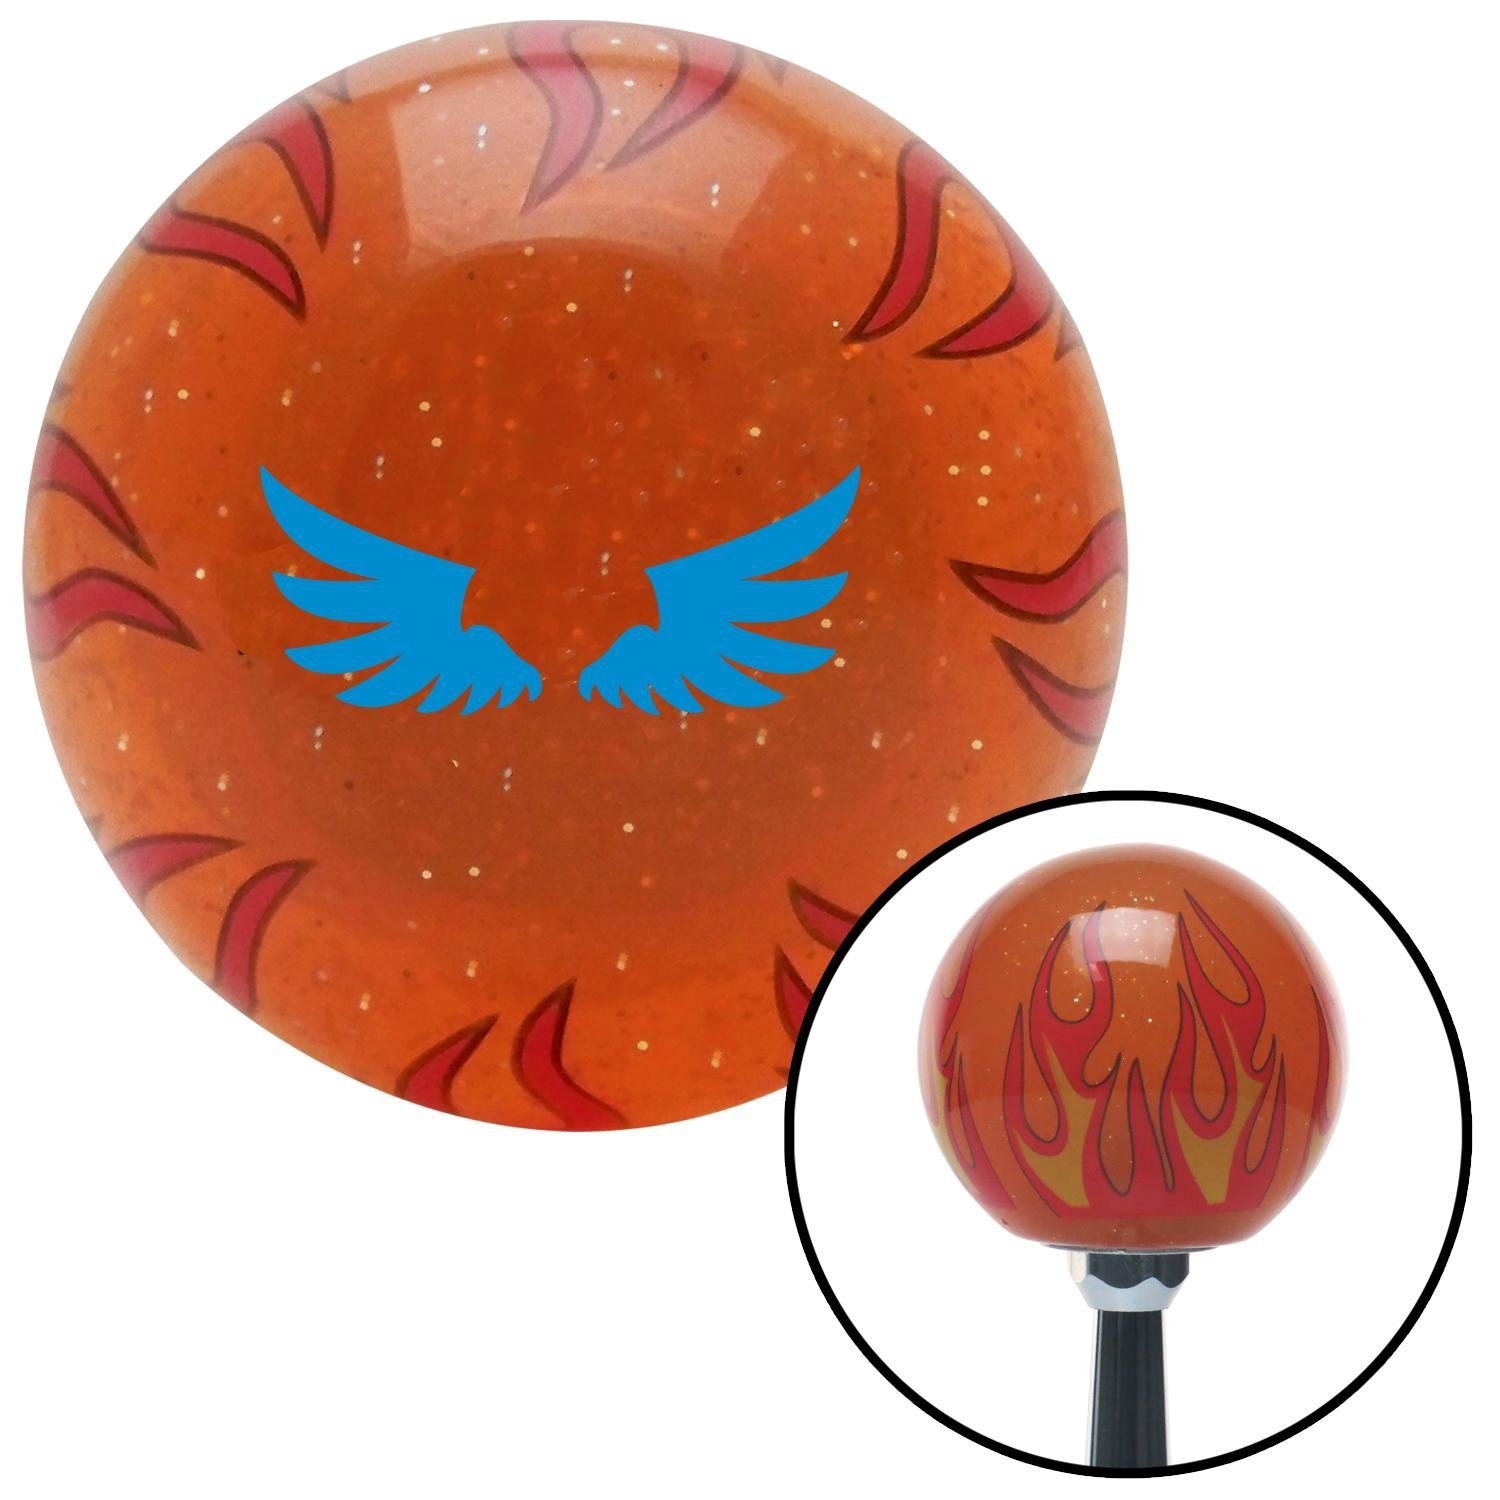 American Shifter 253742 Orange Flame Metal Flake Shift Knob with M16 x 1.5 Insert Blue Wing of Royalty